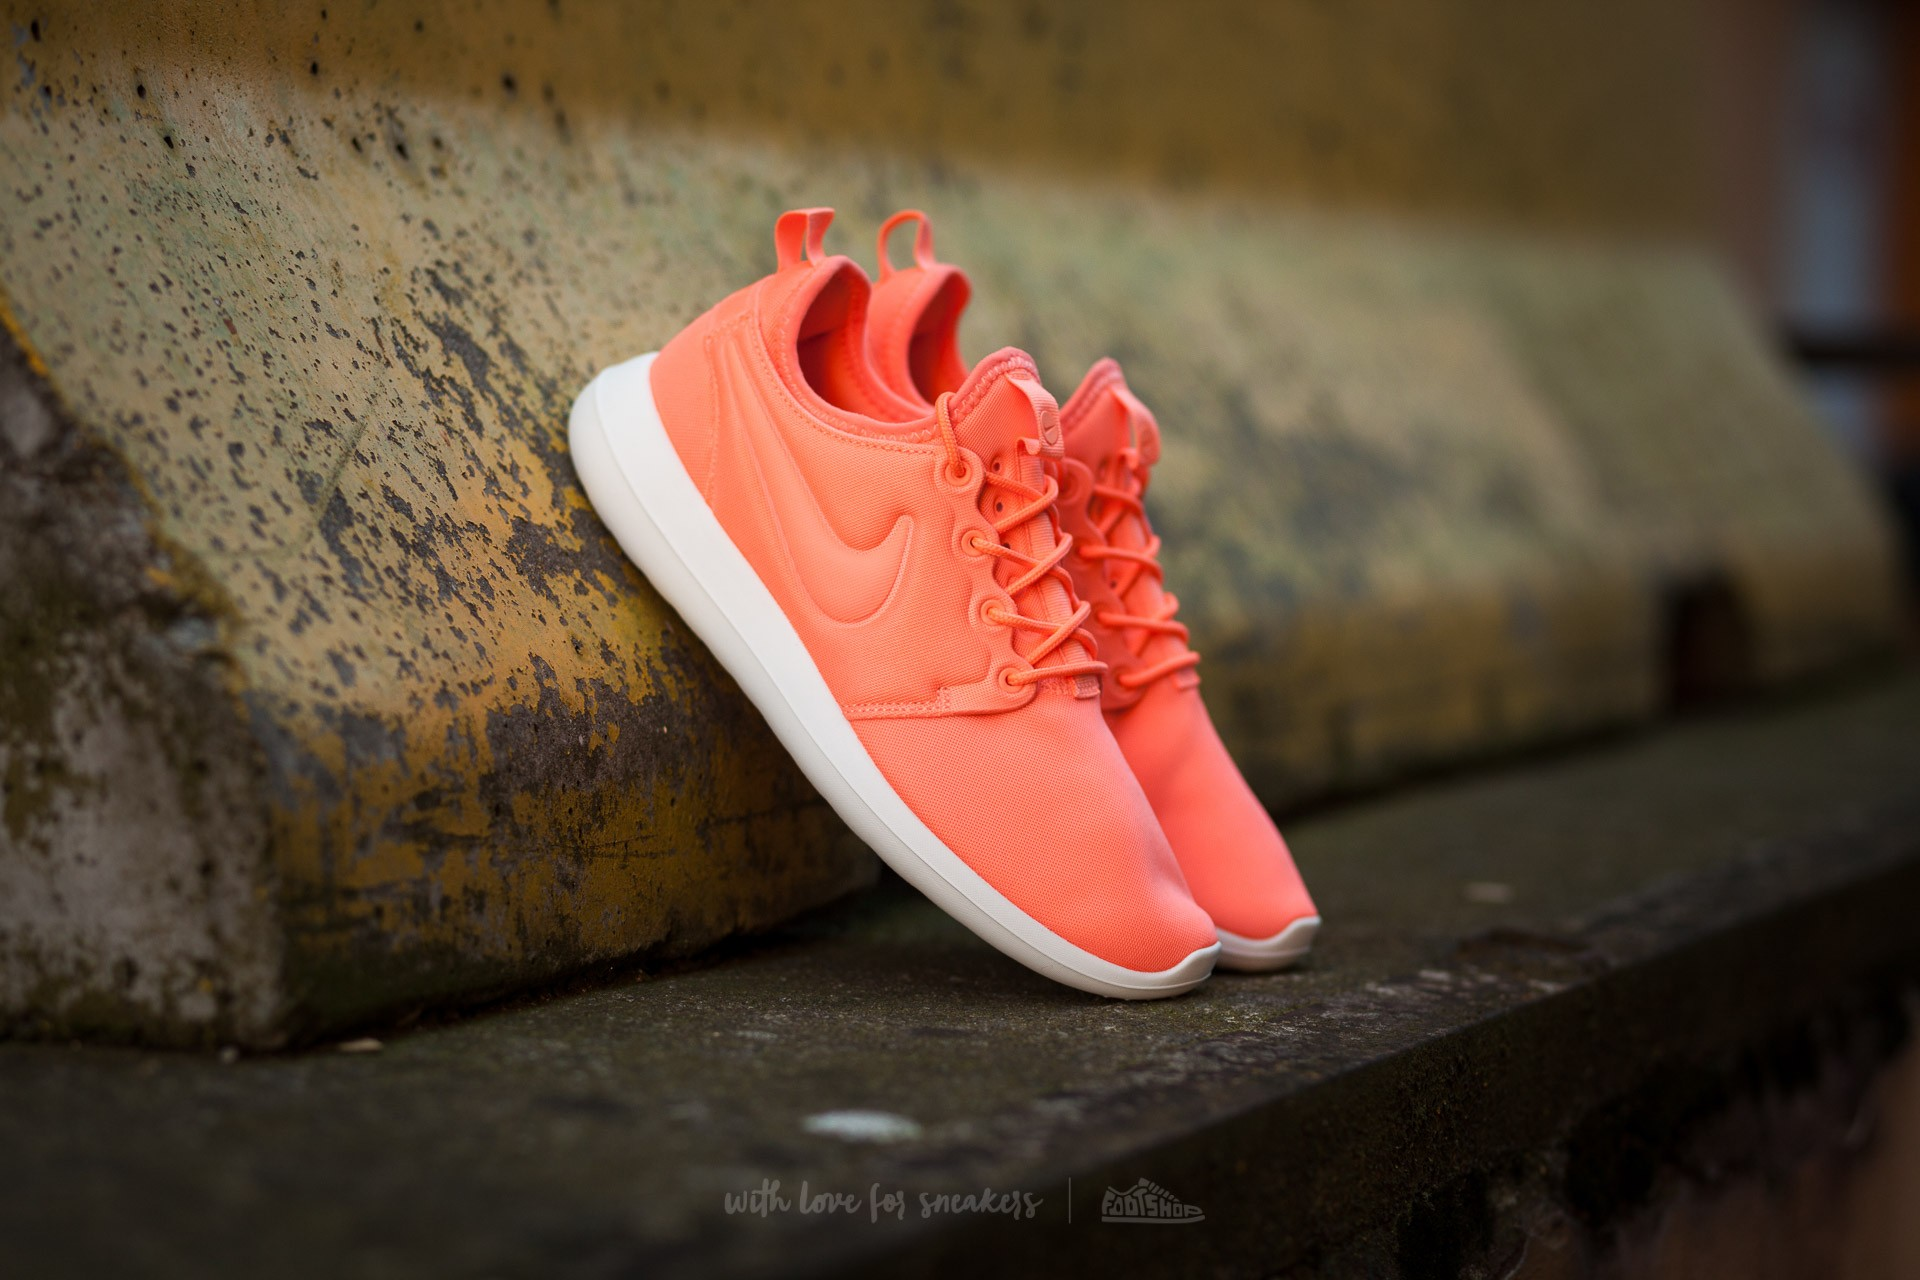 bc1fda263e2a ... spain nike w roshe two atomic pink sail turf orange fdf1b 53f46